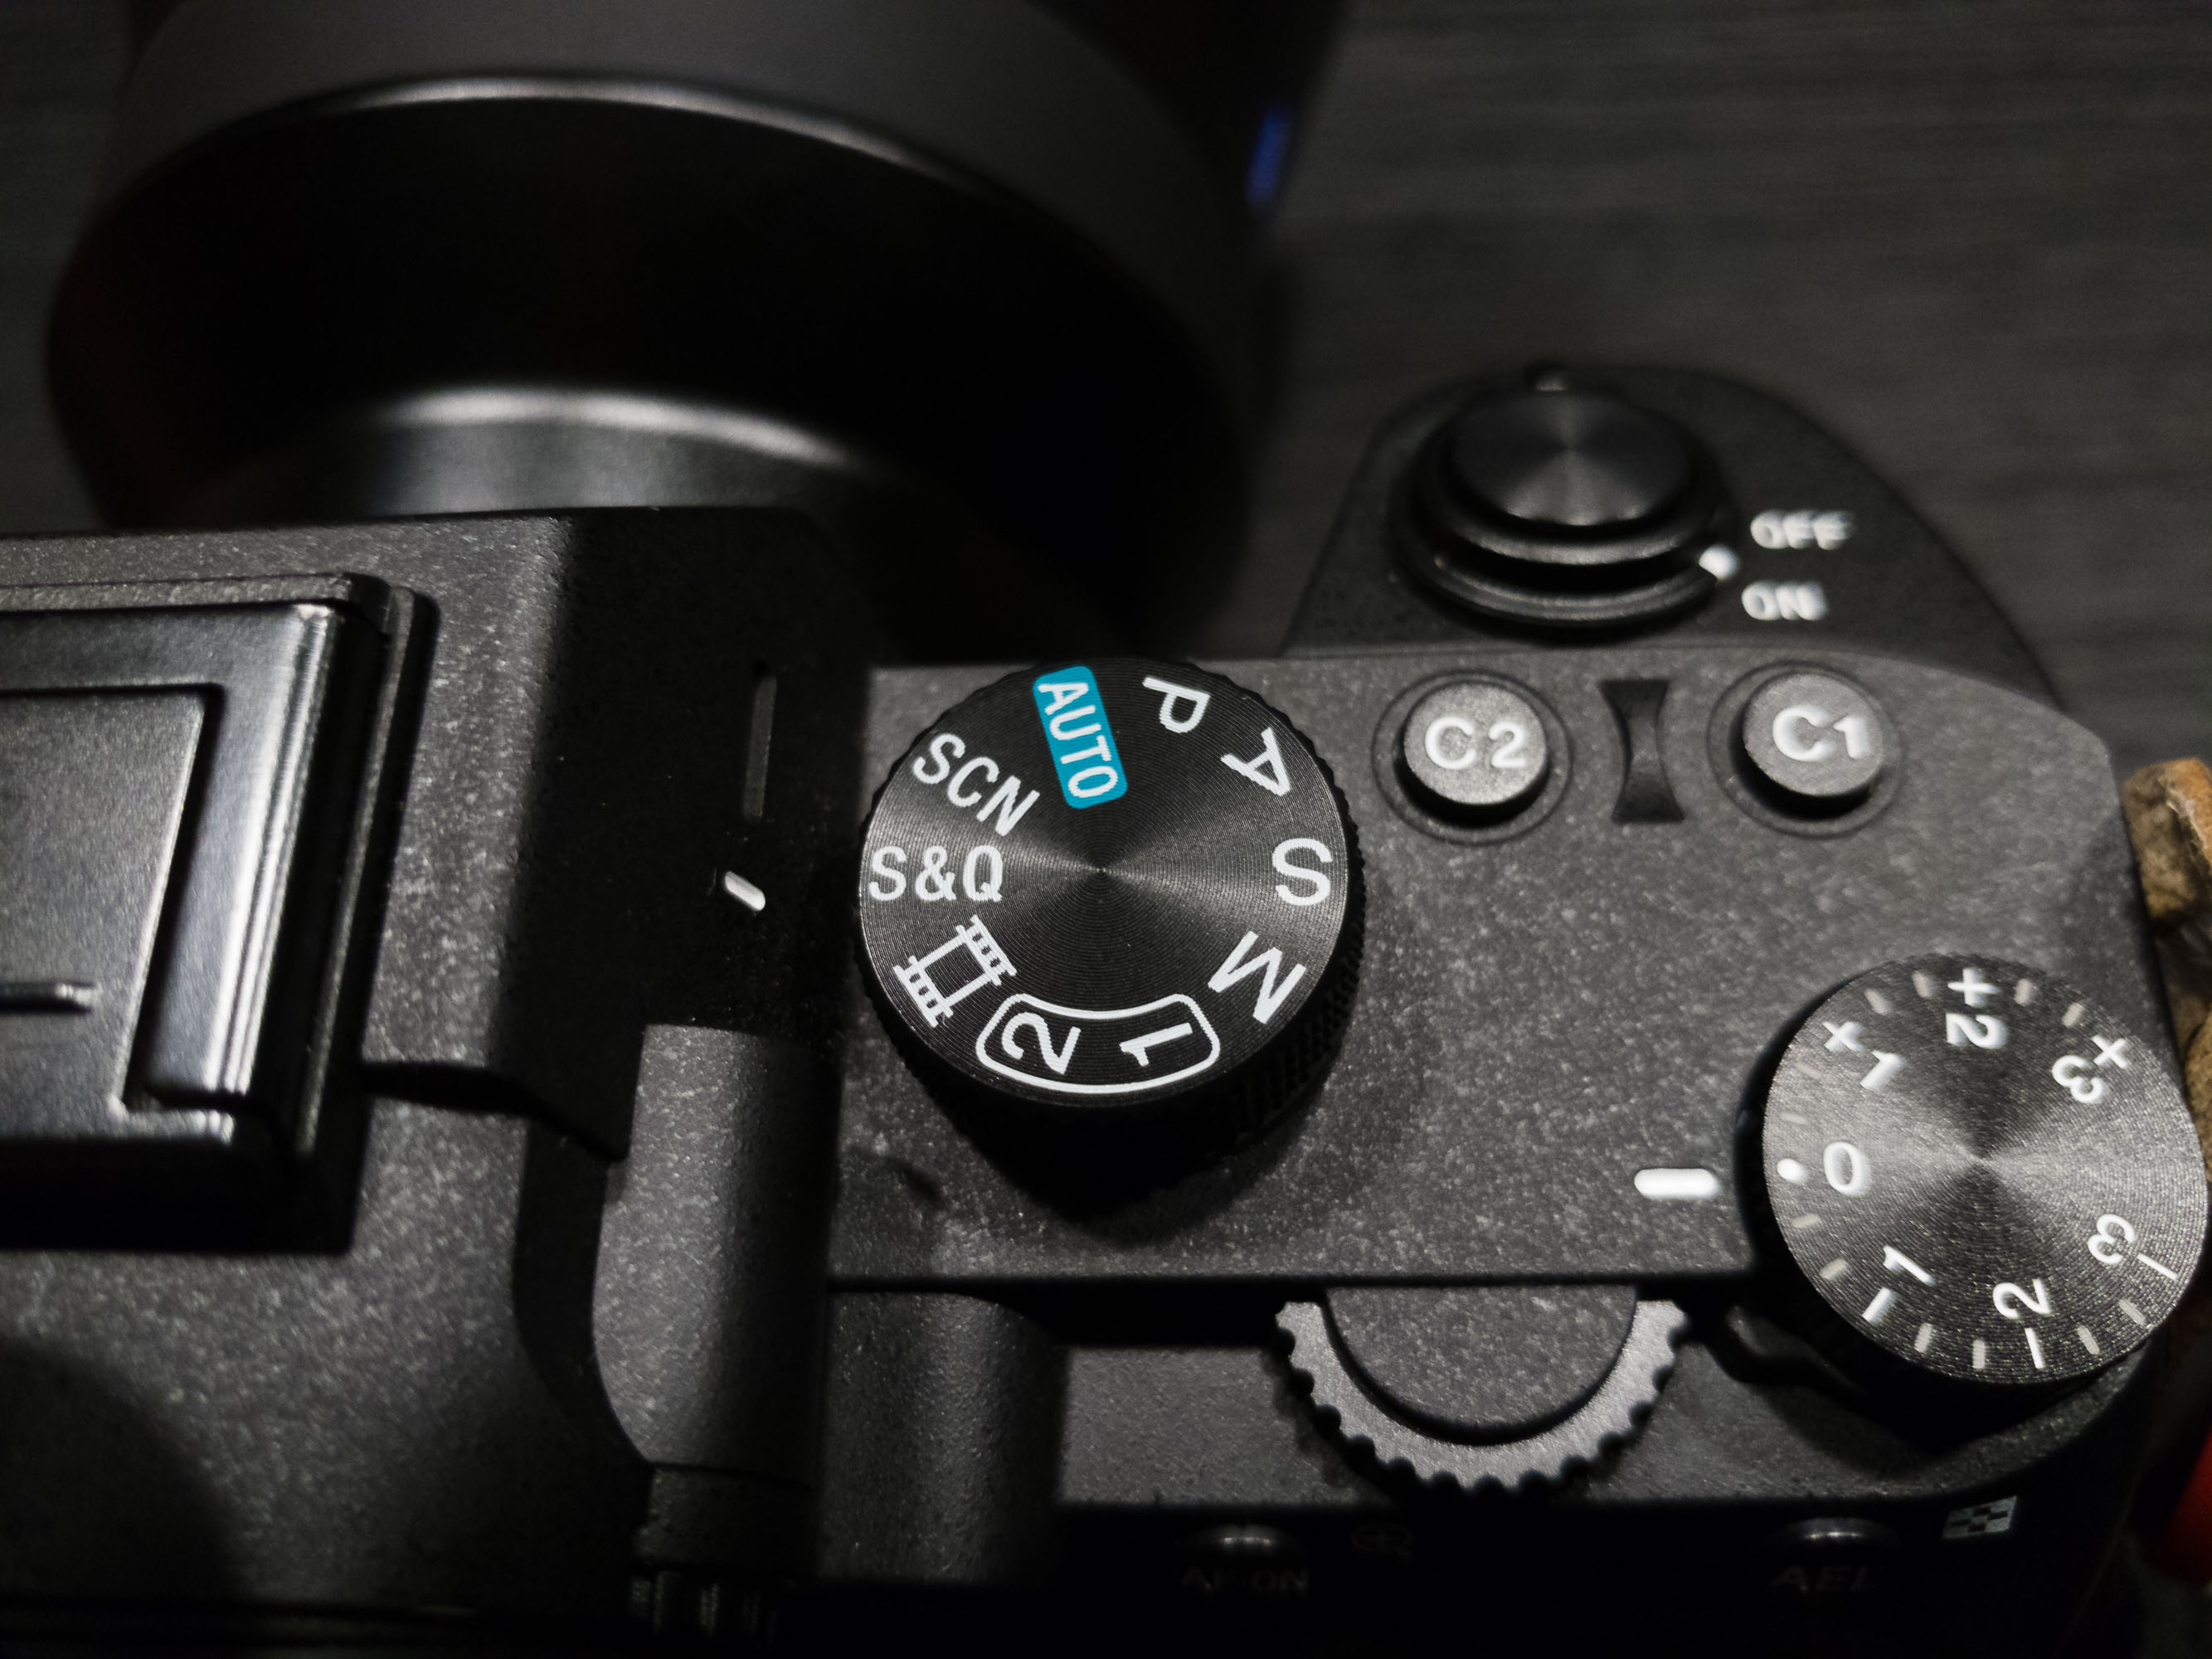 Sony a7III mode dial